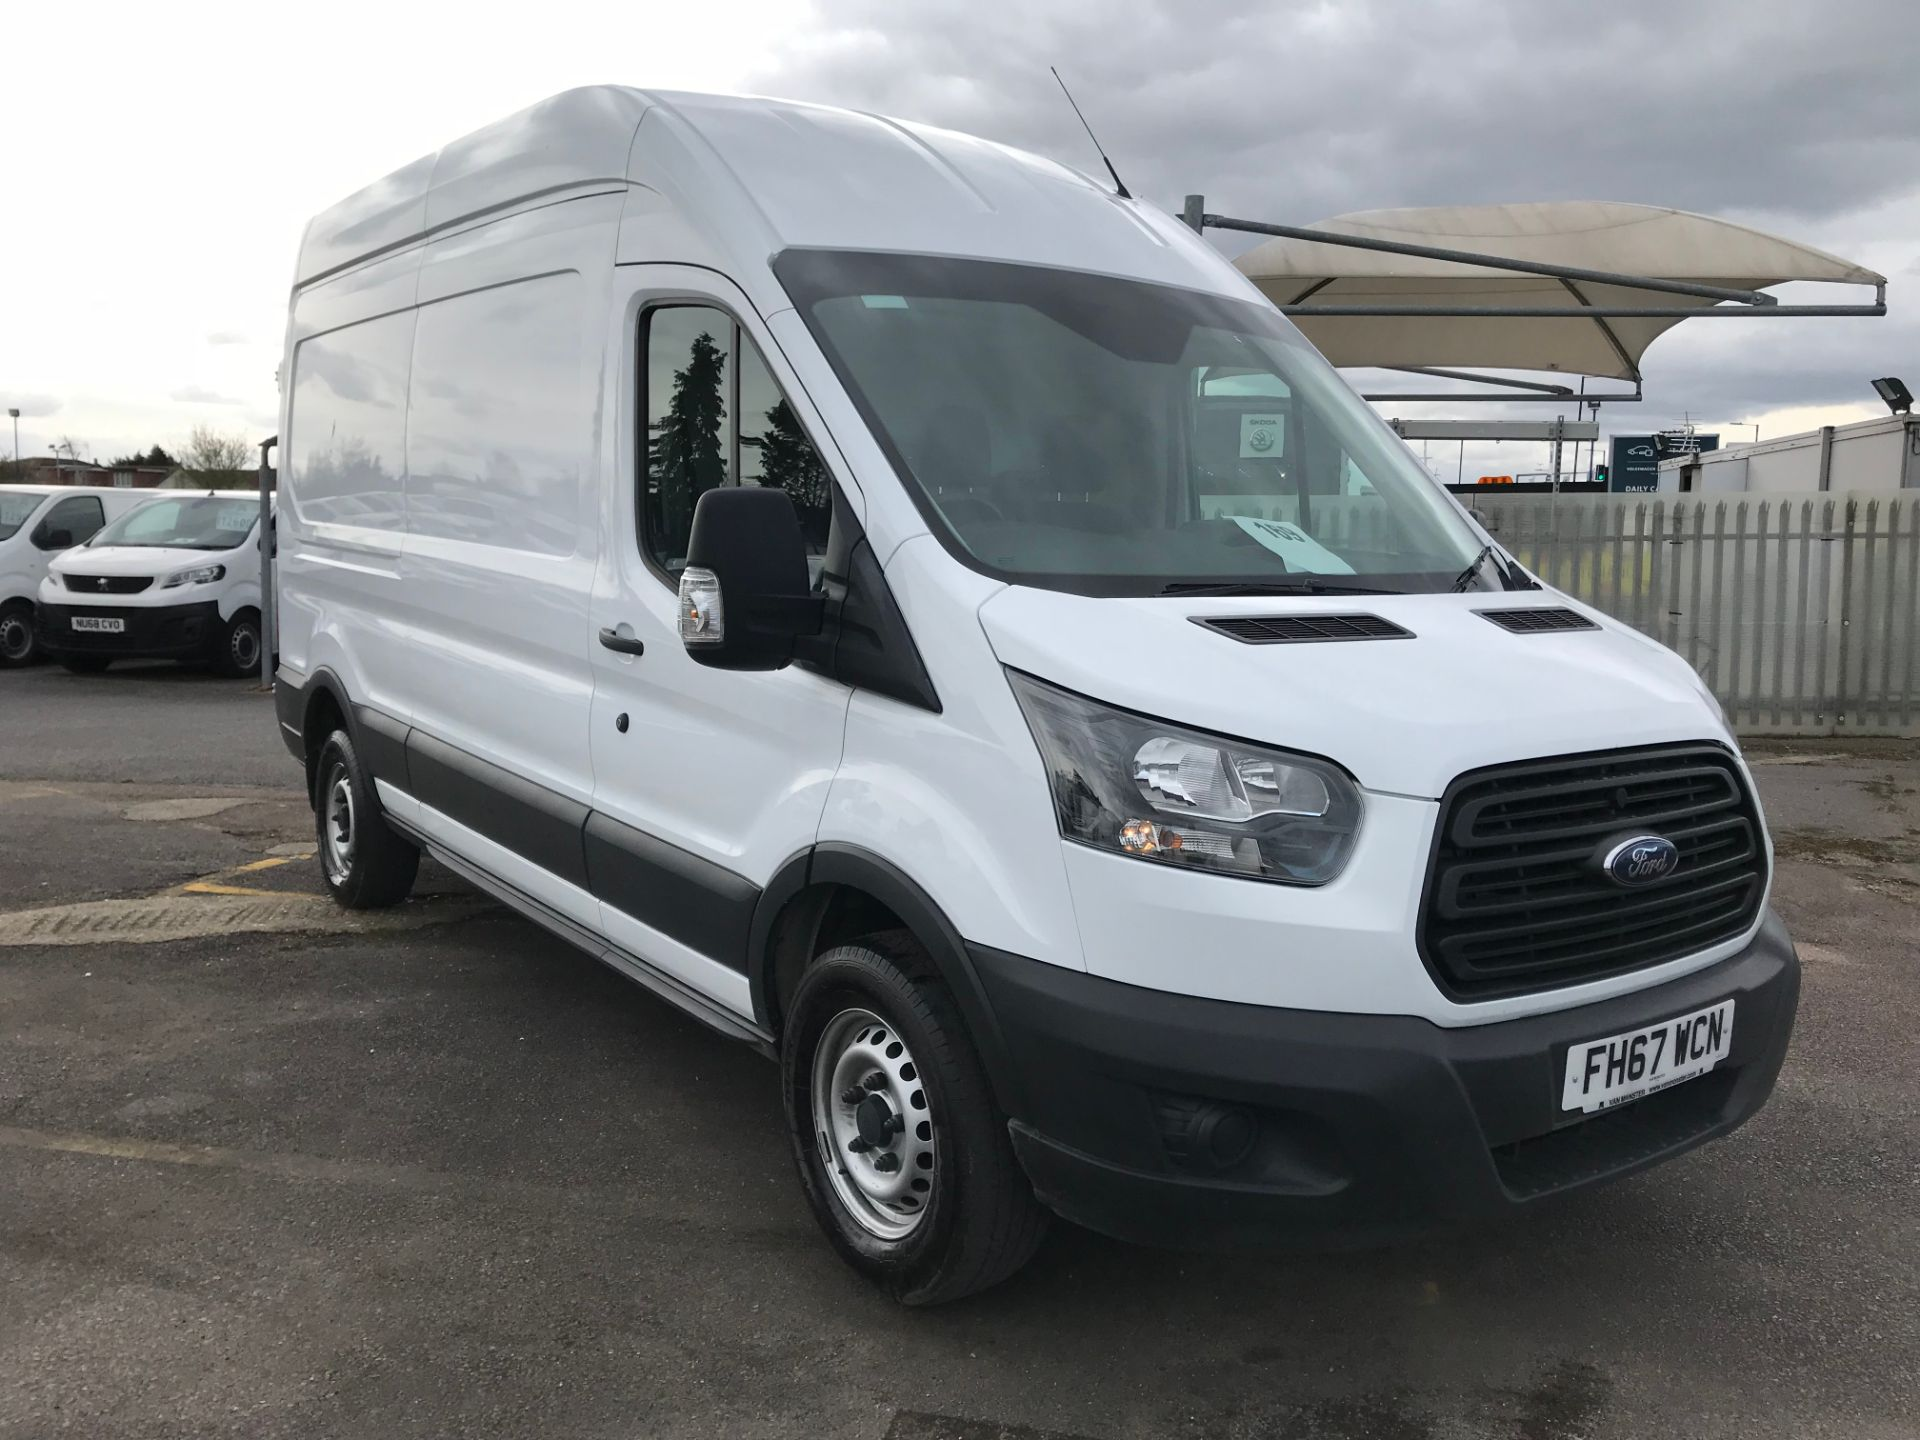 2018 Ford Transit 2.0 Tdci 130Ps H3 Van (FH67WCN)